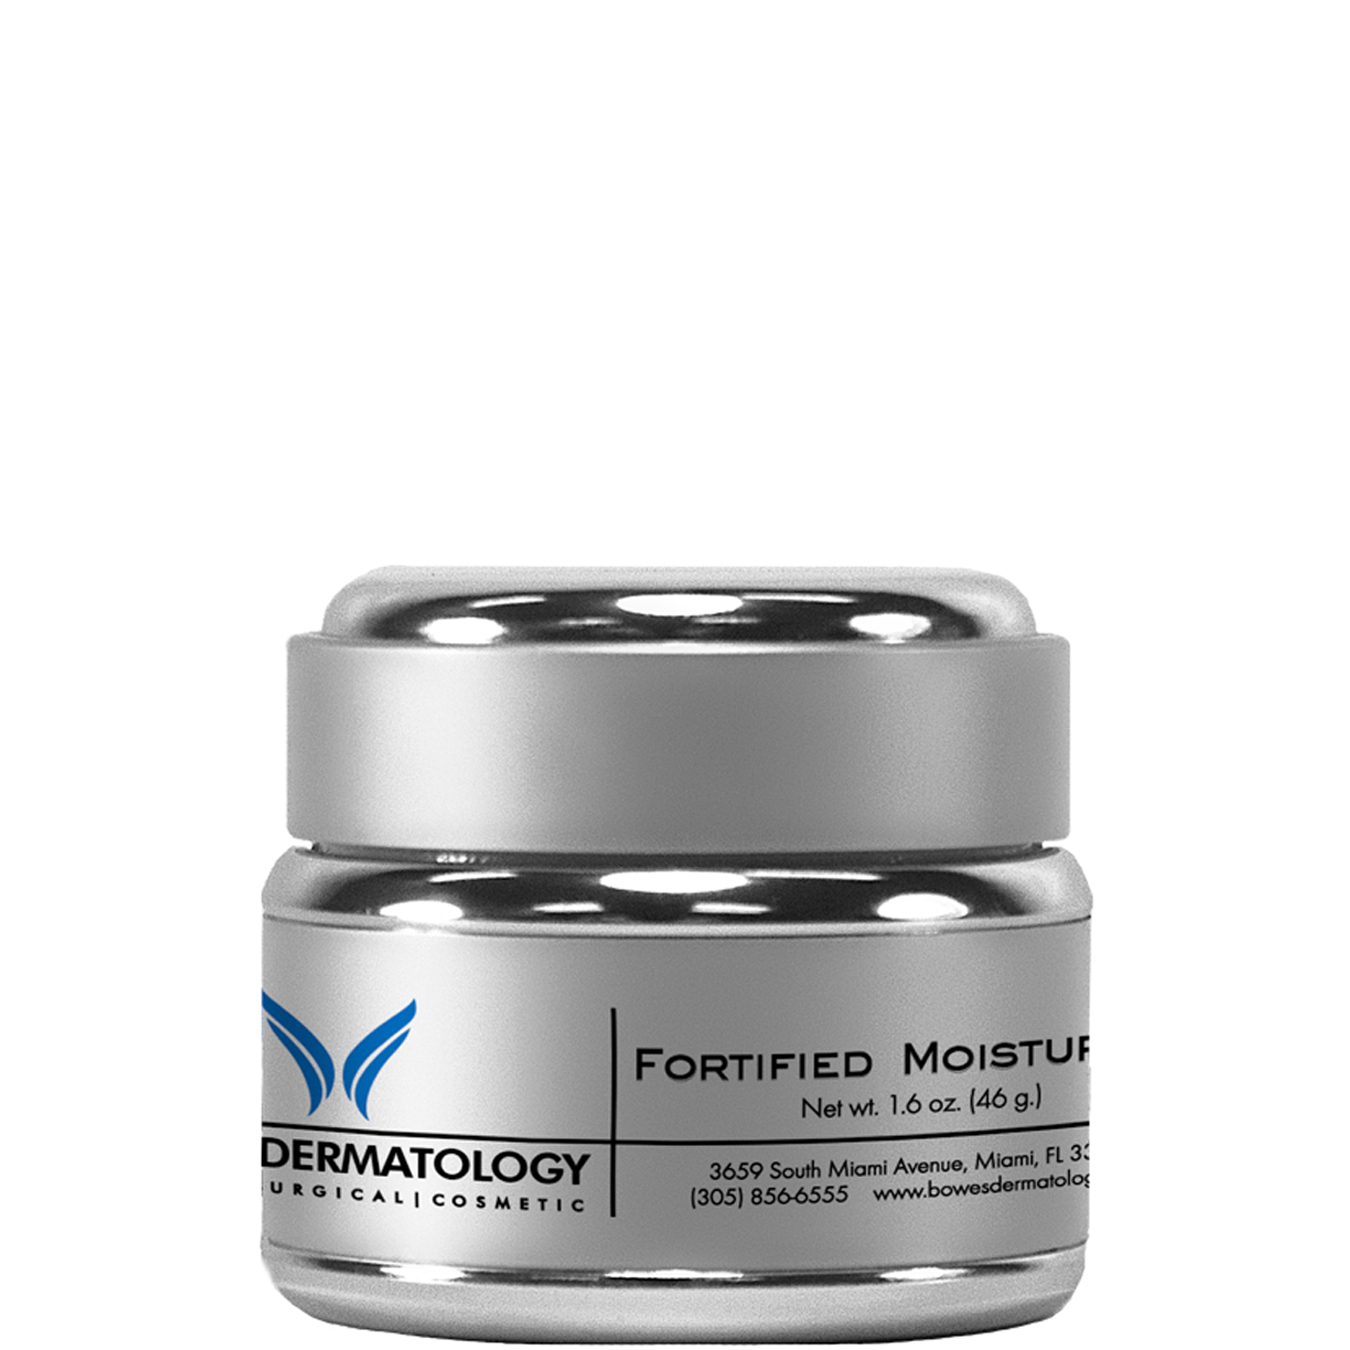 Fortified Moisturizer by Bowes Dermatology